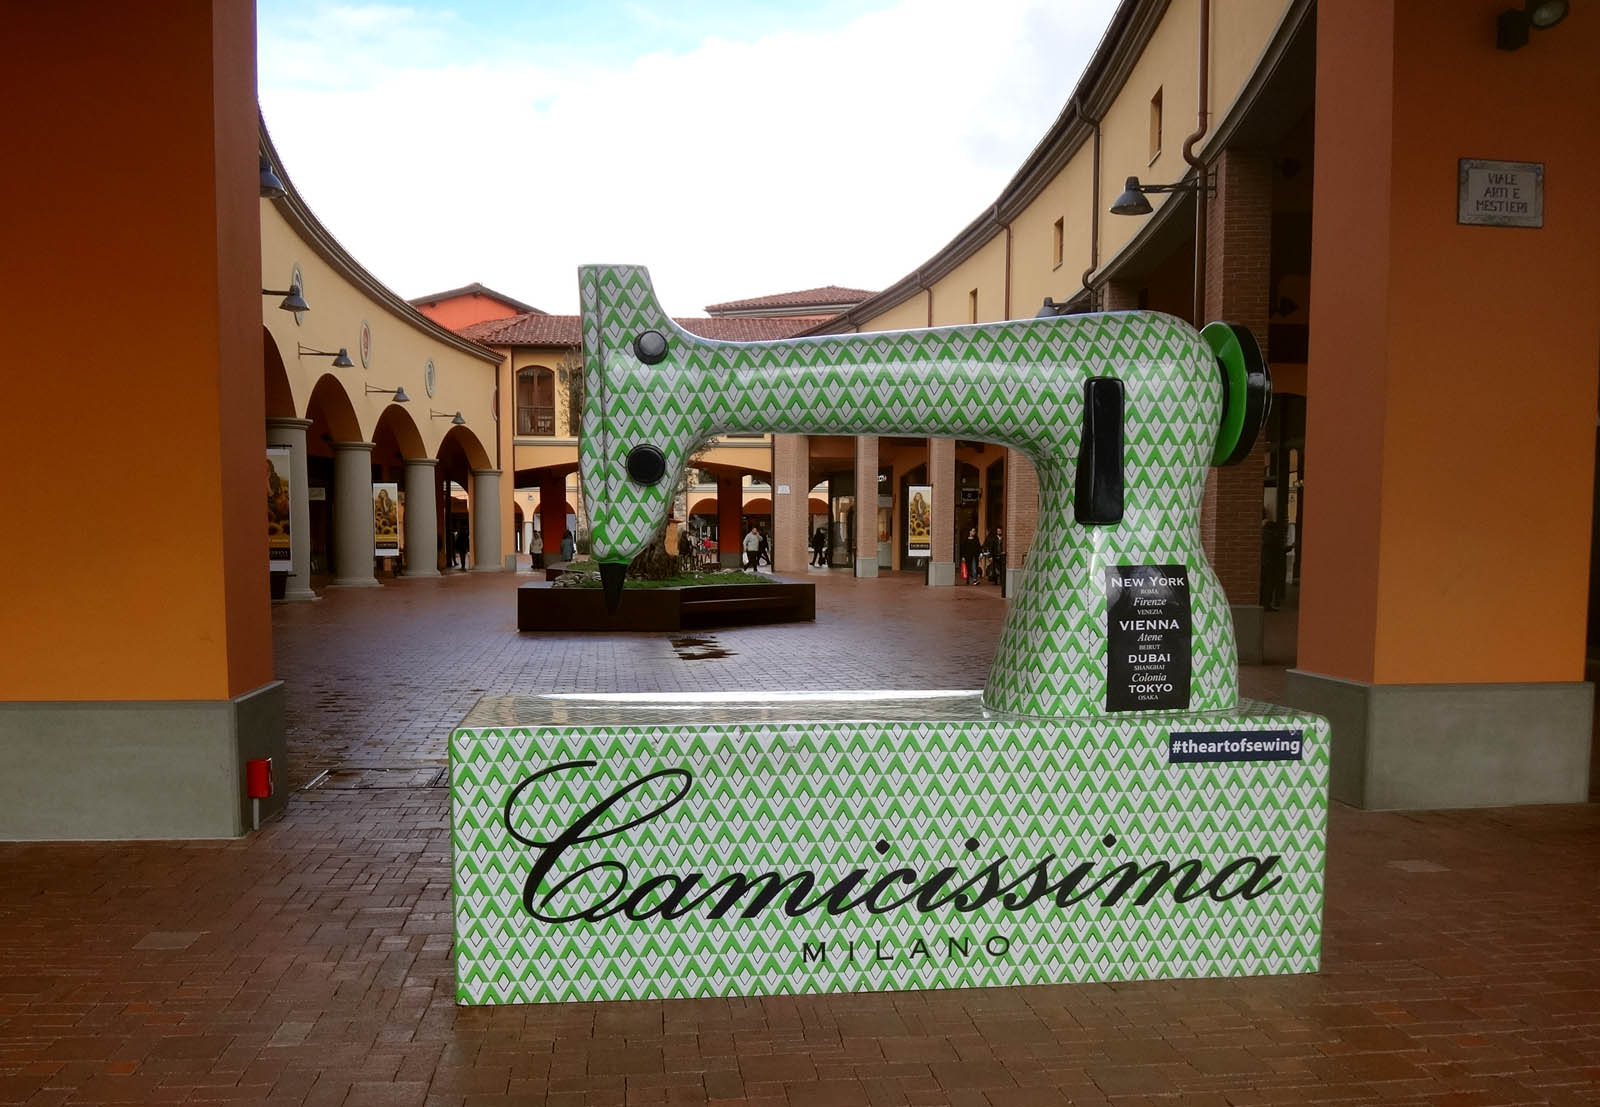 http://gograno.com/wp-content/uploads/2016/03/DSC01638-Arezzo-Valdichiana-Outlet-Center-2016.jpg